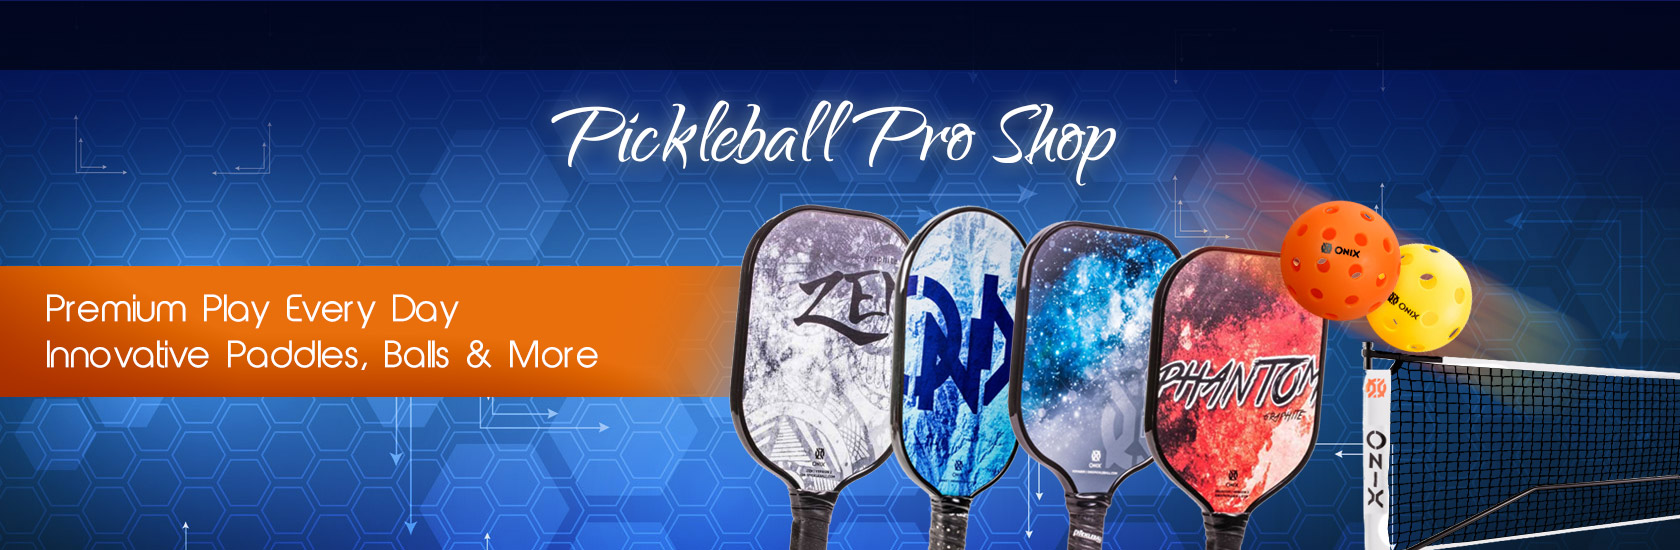 pickleball-store-1-1